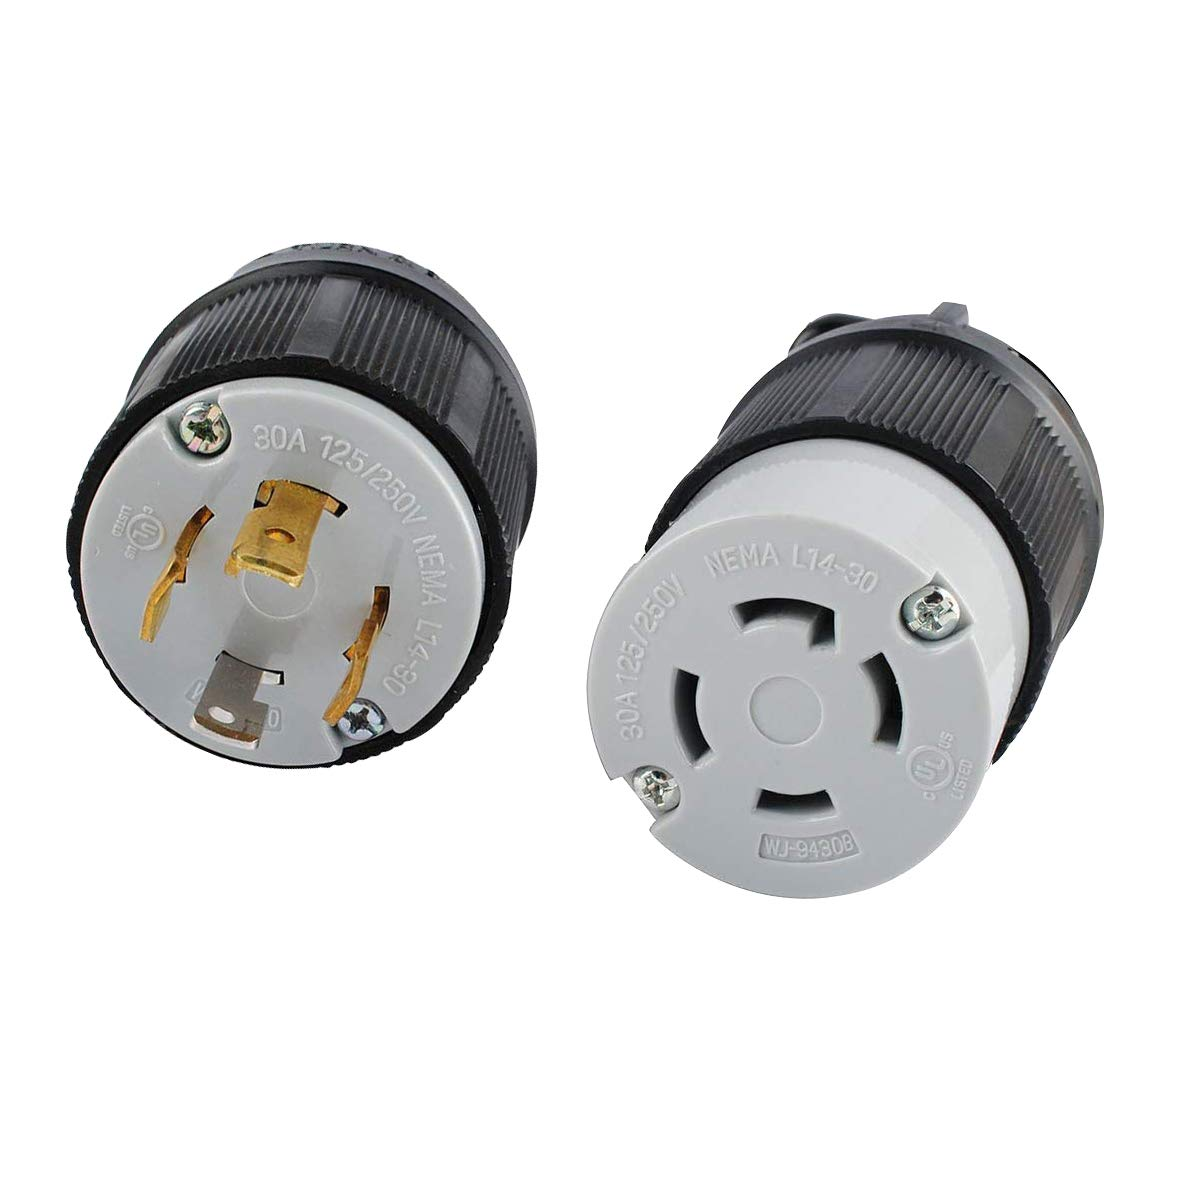 L14-30 L14-30R Connector and L14-30P Plug Set for 30A, 125/250V, 7500W Generators by Wadoy